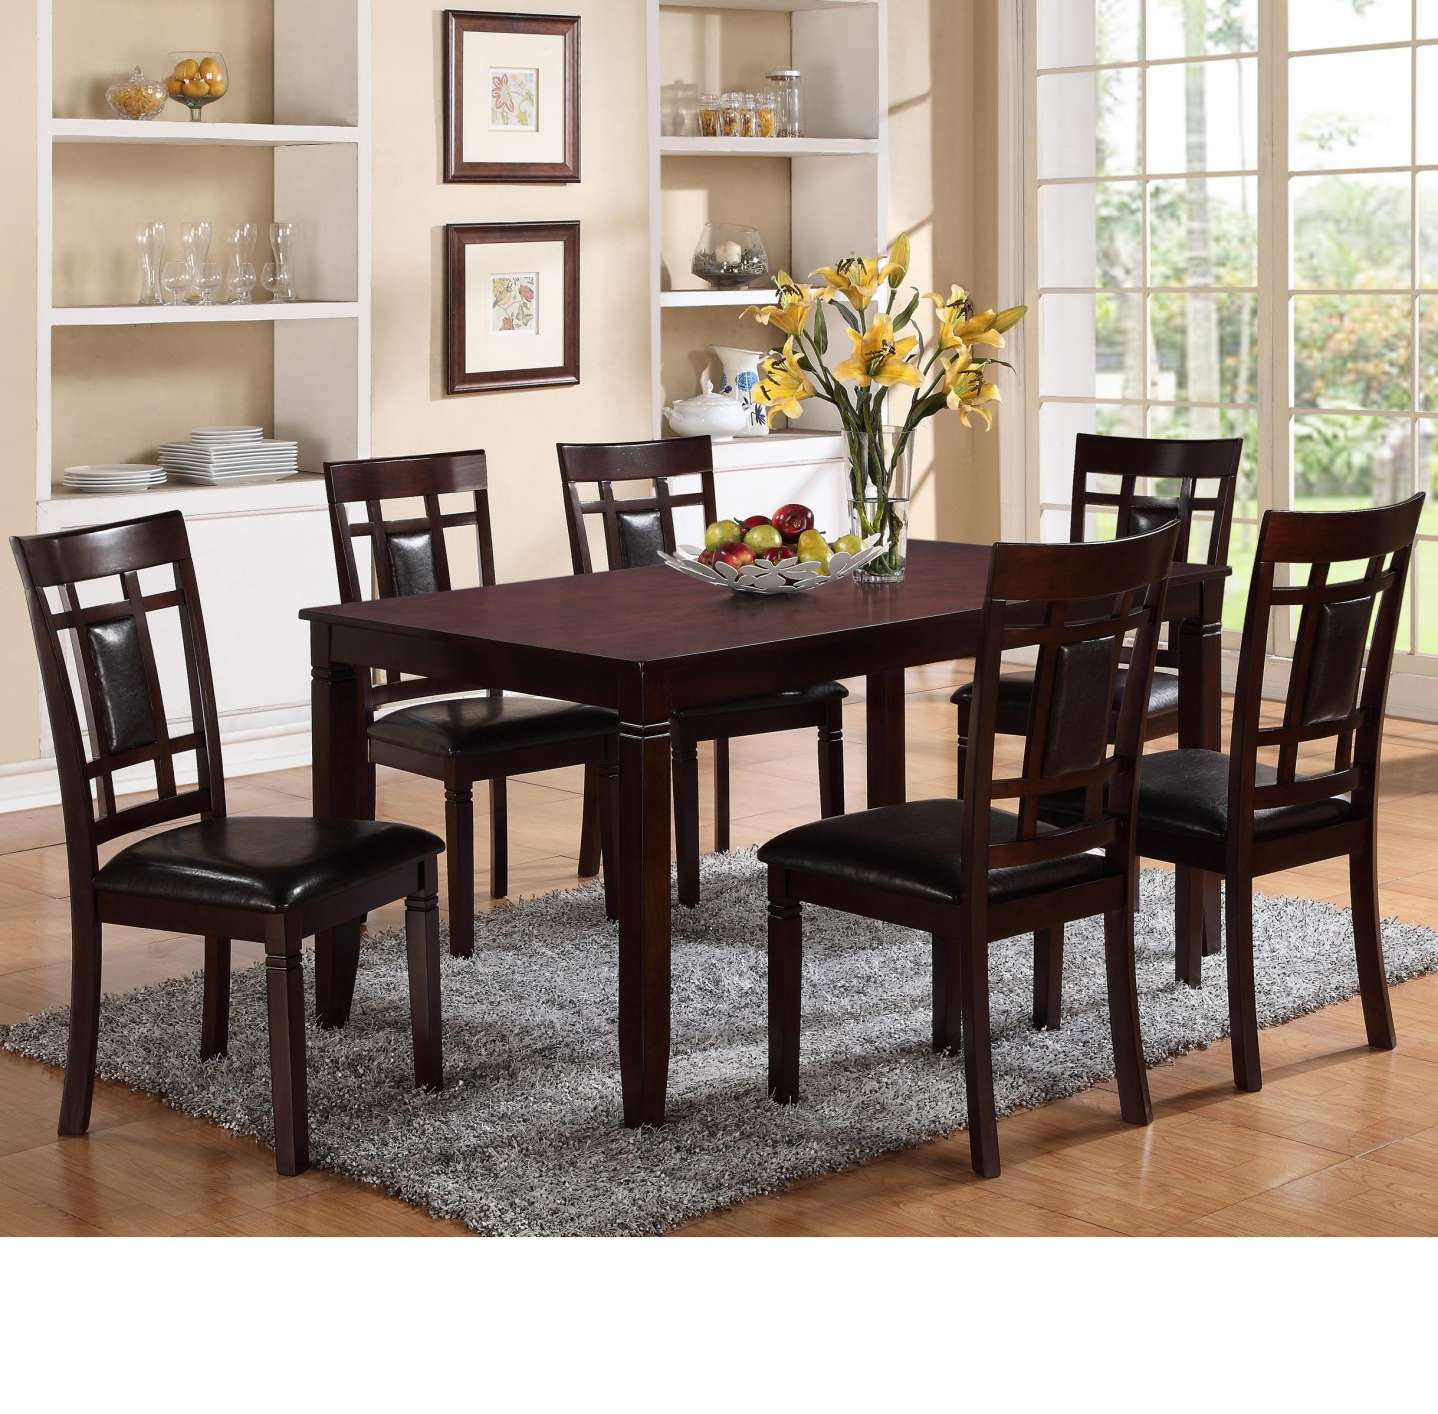 dining room accent pieces also small wall decor ideas meilleur scpi crown mark paige piece table and chair set with block feets home design round mirror full mirrors decorative